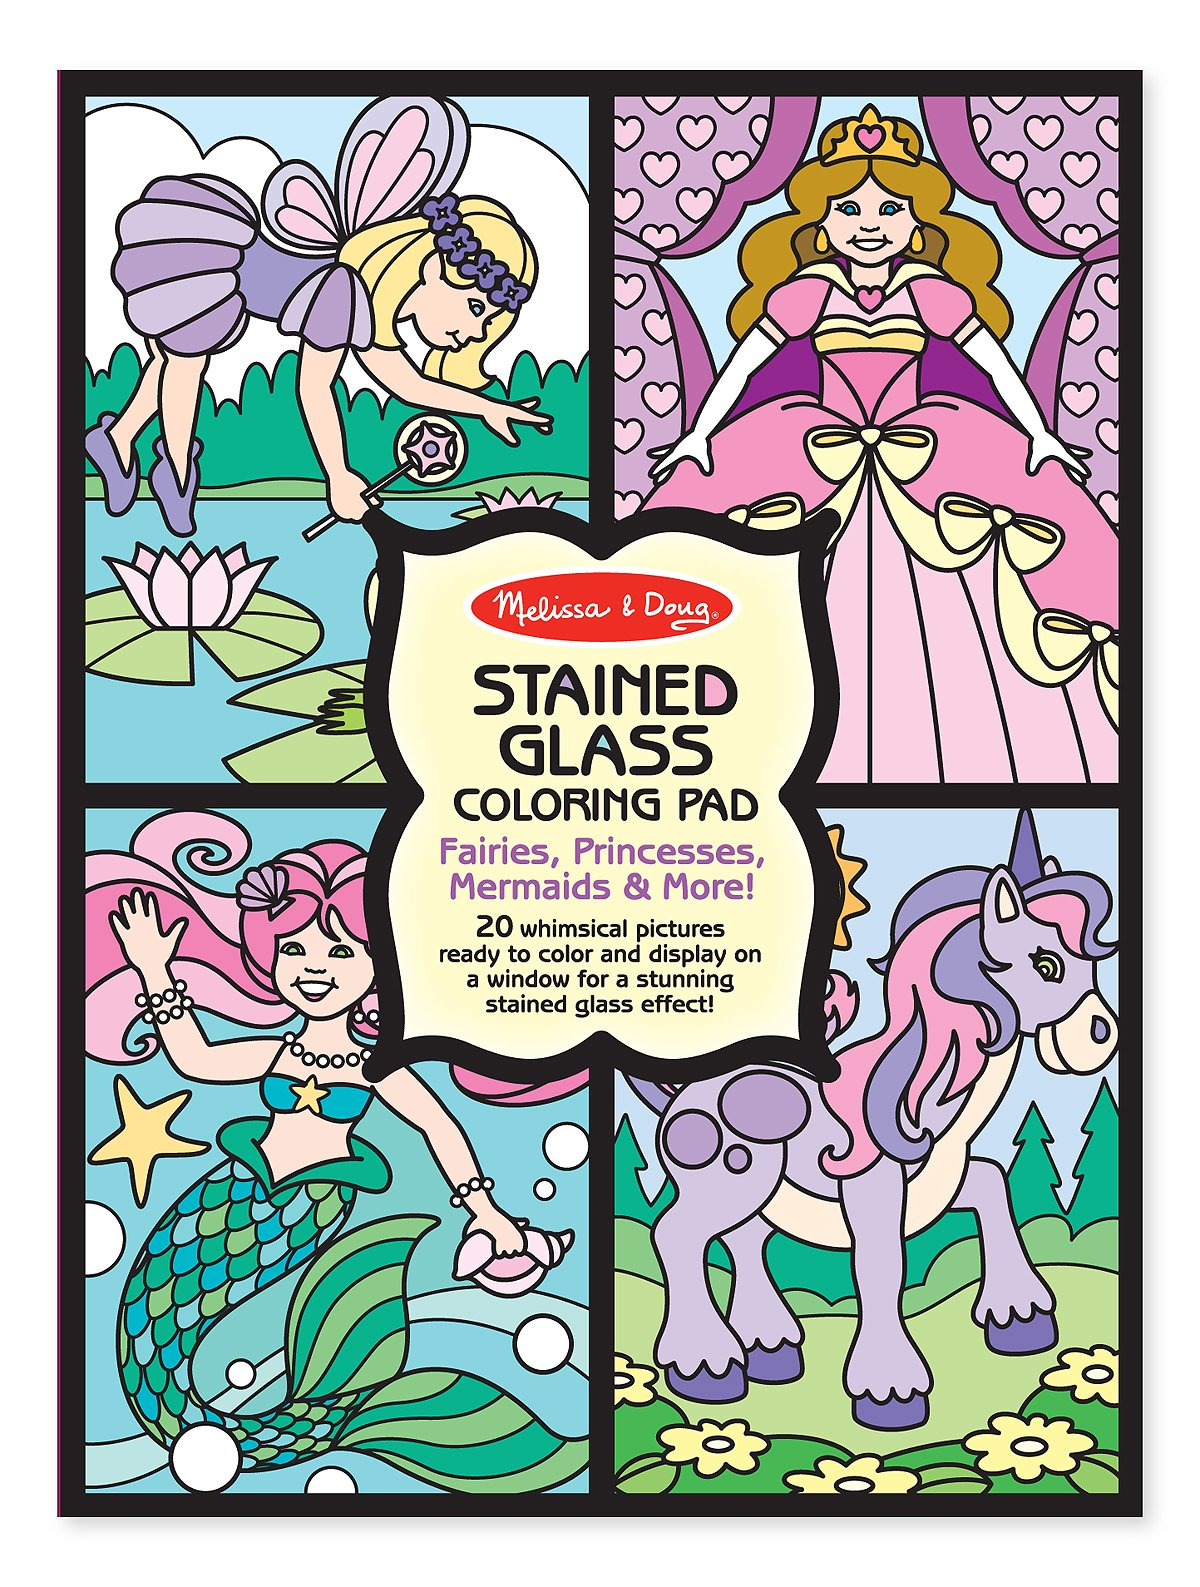 Melissa & Doug Stained Glass Coloring Pad - Fairies, Princesses, Mermaids, and More